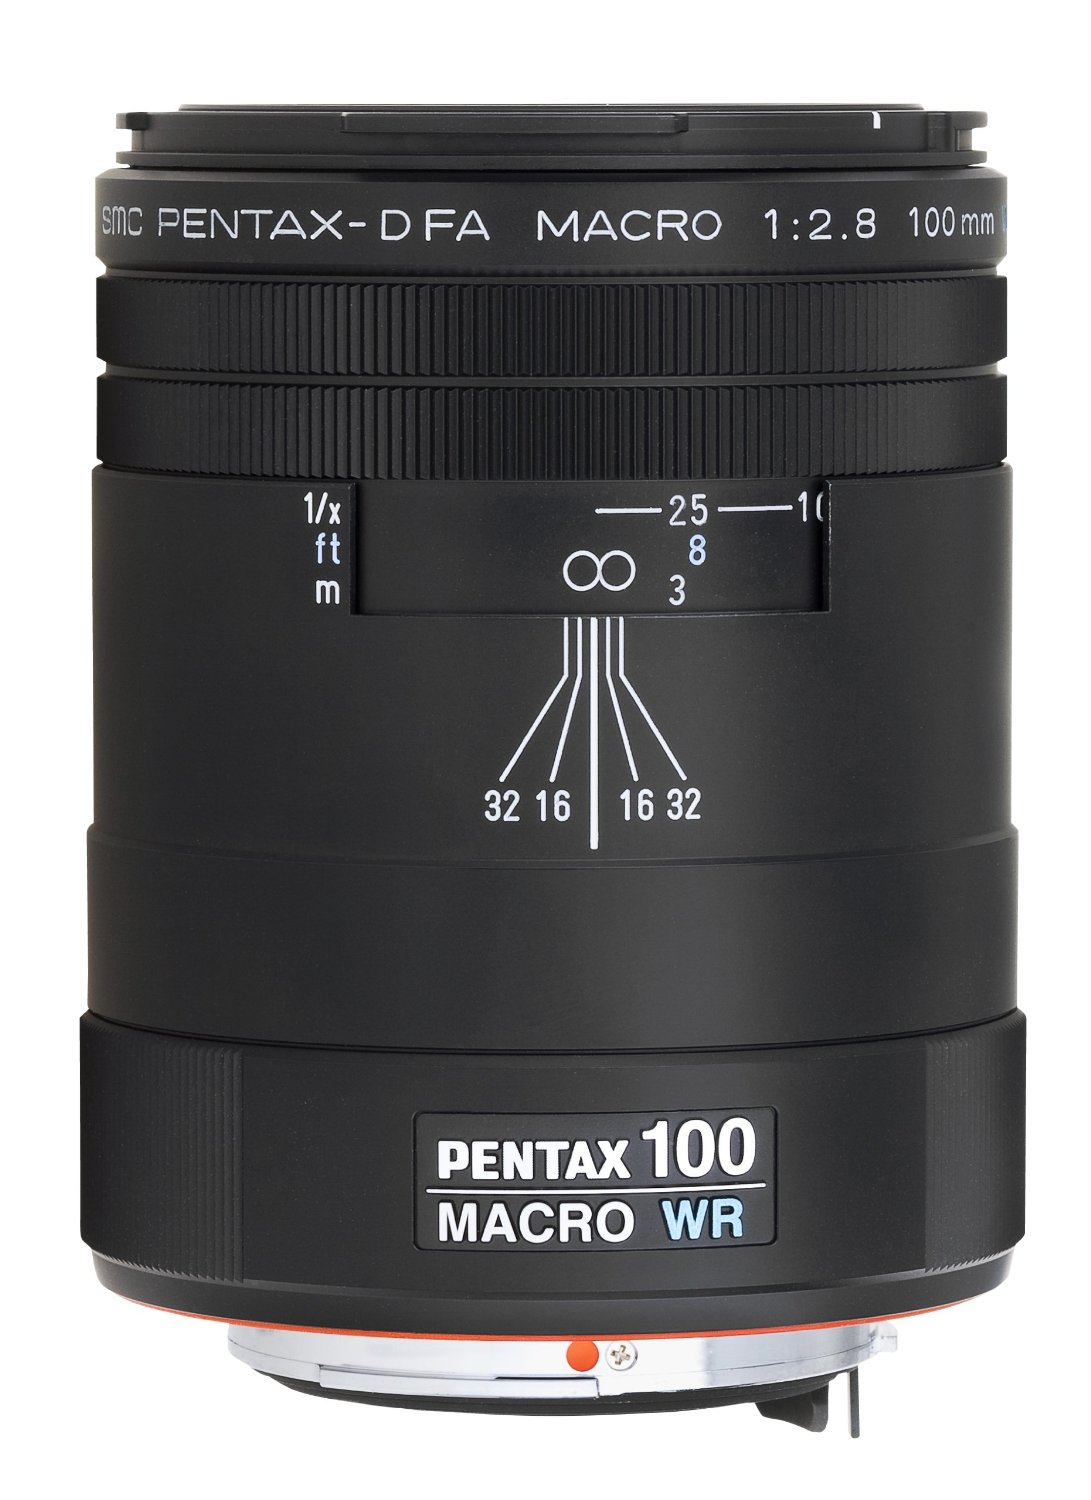 Pentax smc DFA Macro 100mm f/2.8 Weather-Resistant Macro Lens